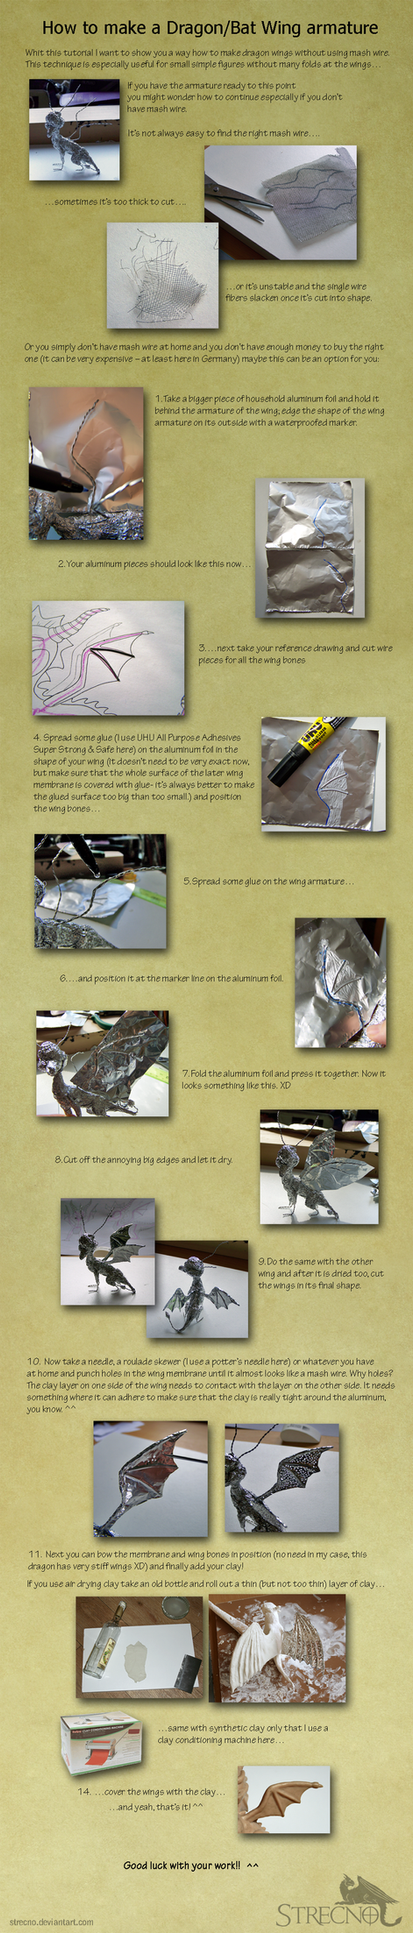 How to make a simple Dragon wing armature by Strecno